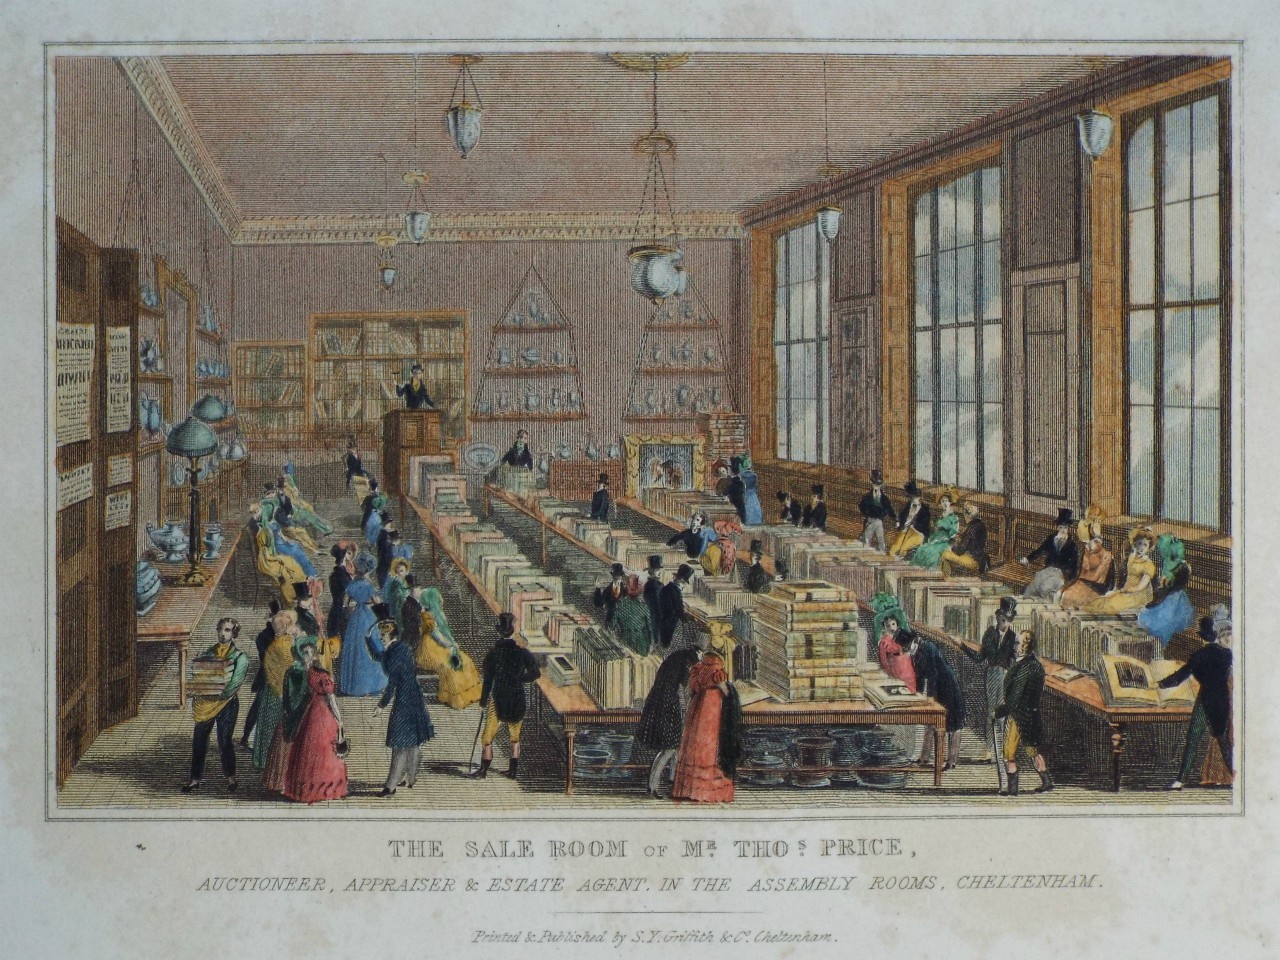 Print - The Sale Room of Mr. Thos. Price, Auctioneer, Appraiser & Estate Agent, in the Assembly Rooms, Cheltenham.